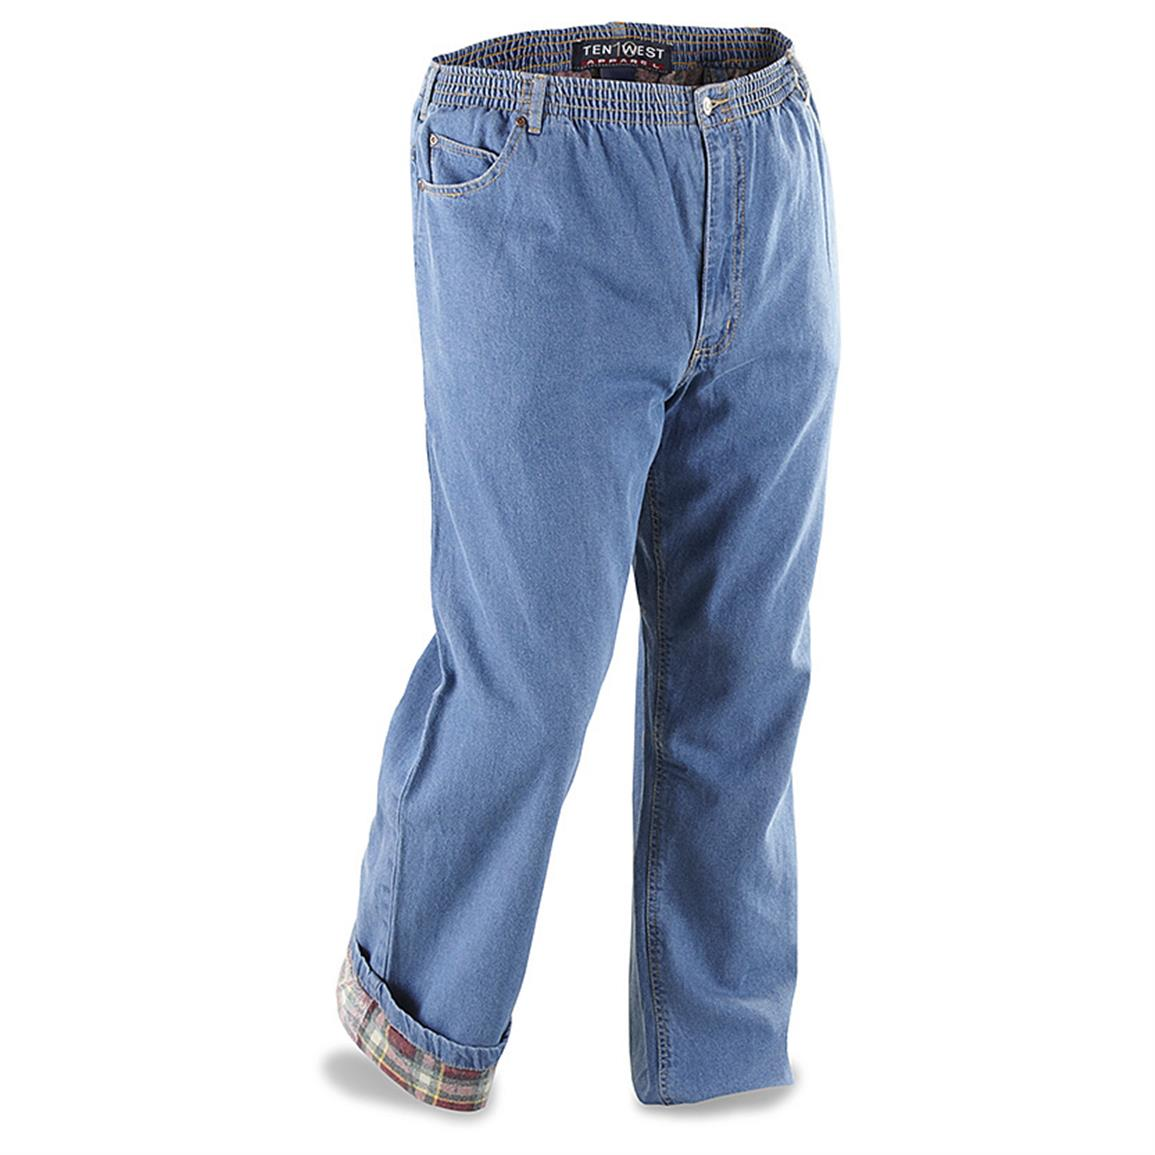 Jeans provide a decent amount of warmth on their own, but sometimes you need extra protection against old Jack Frost. Lined with flannel, these amazing bottoms from Old .